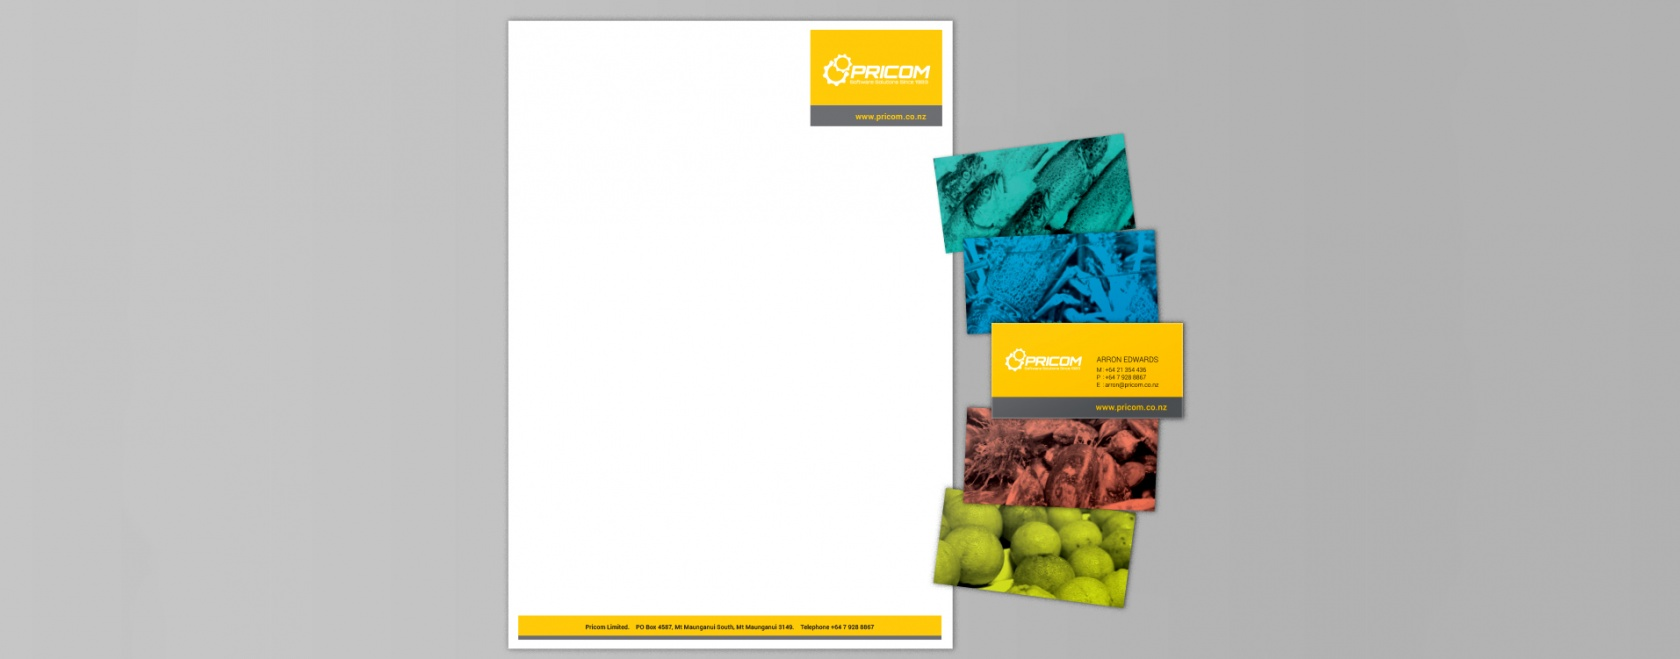 project-pricom-stationery